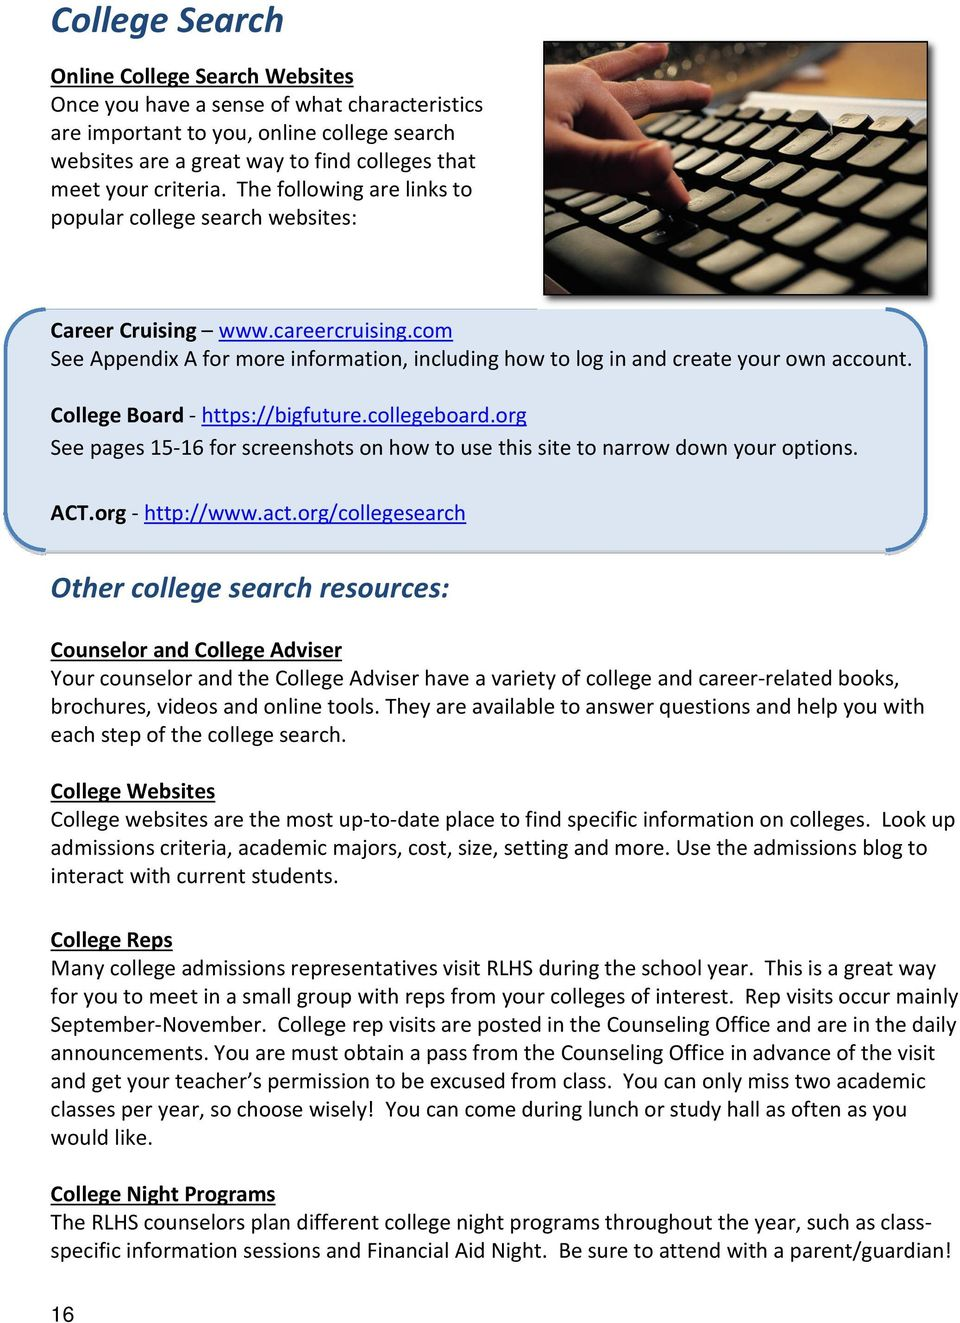 College Board - https://bigfuture.collegeboard.org See pages 15-16 for screenshots on how to use this site to narrow down your options. ACT.org - http://www.act.